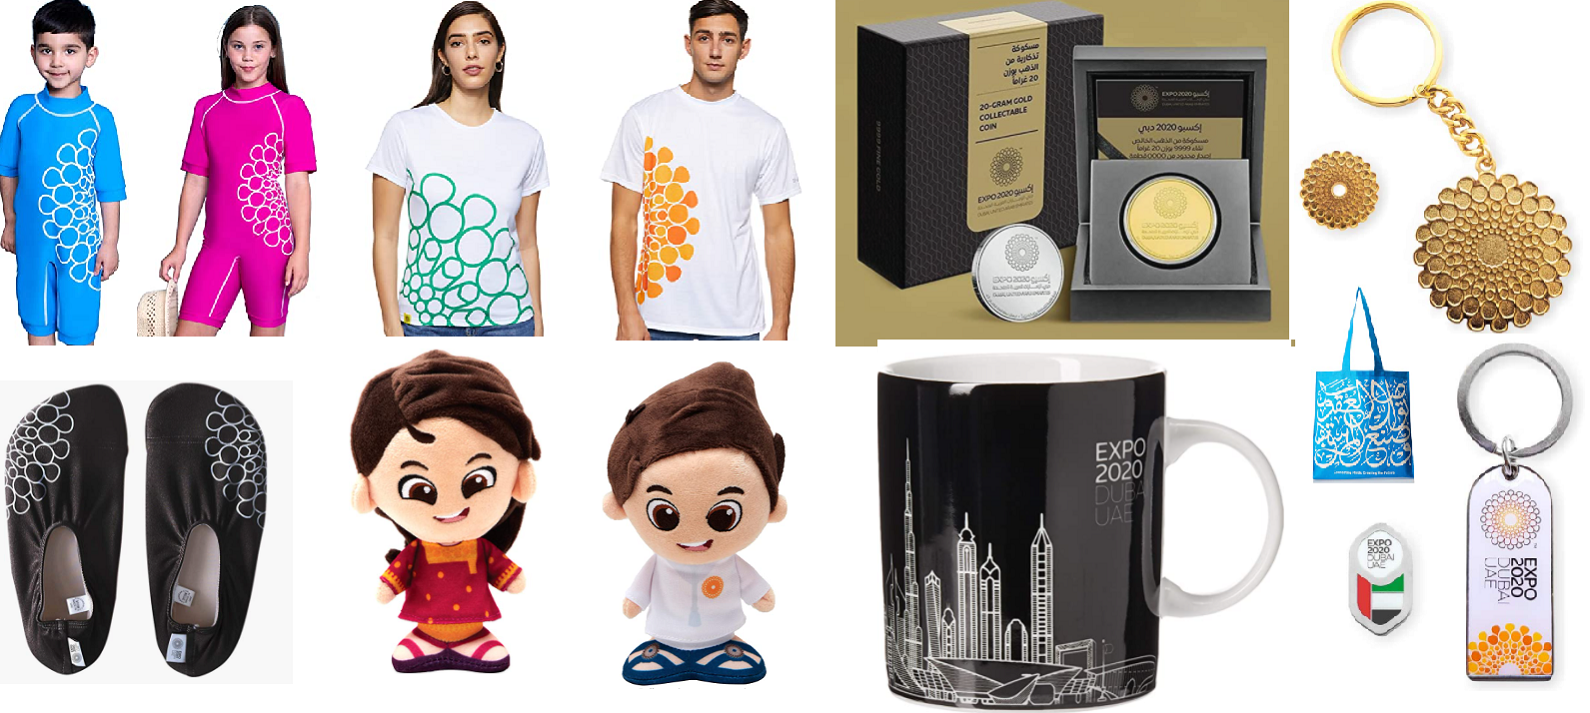 EXPO 2020 tshirts-shoes-mascots-keychain-bag-cup